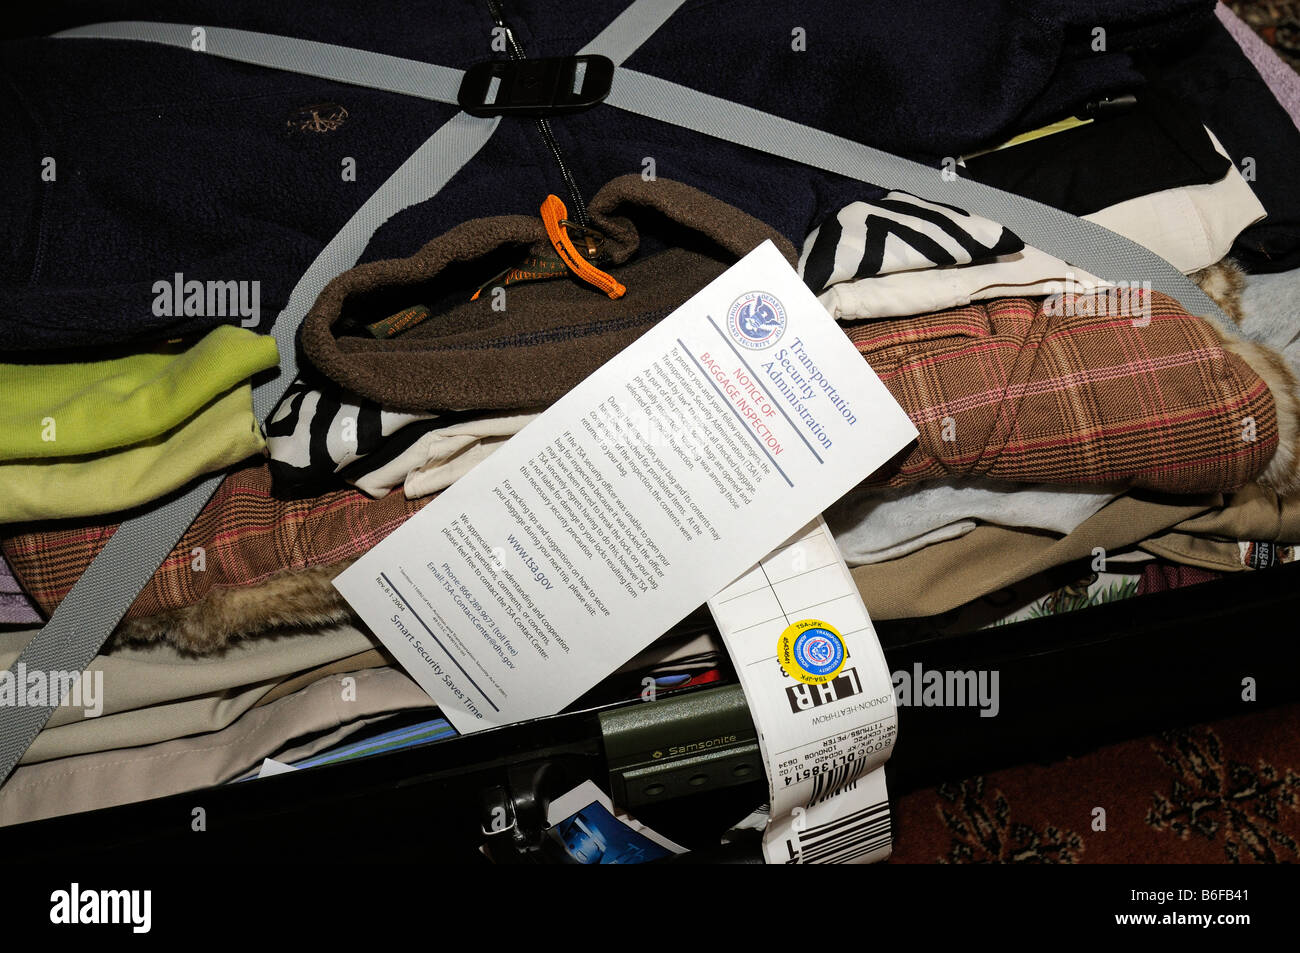 US Department Homeland Security notice of baggage inspection inside an open suitcase - Stock Image